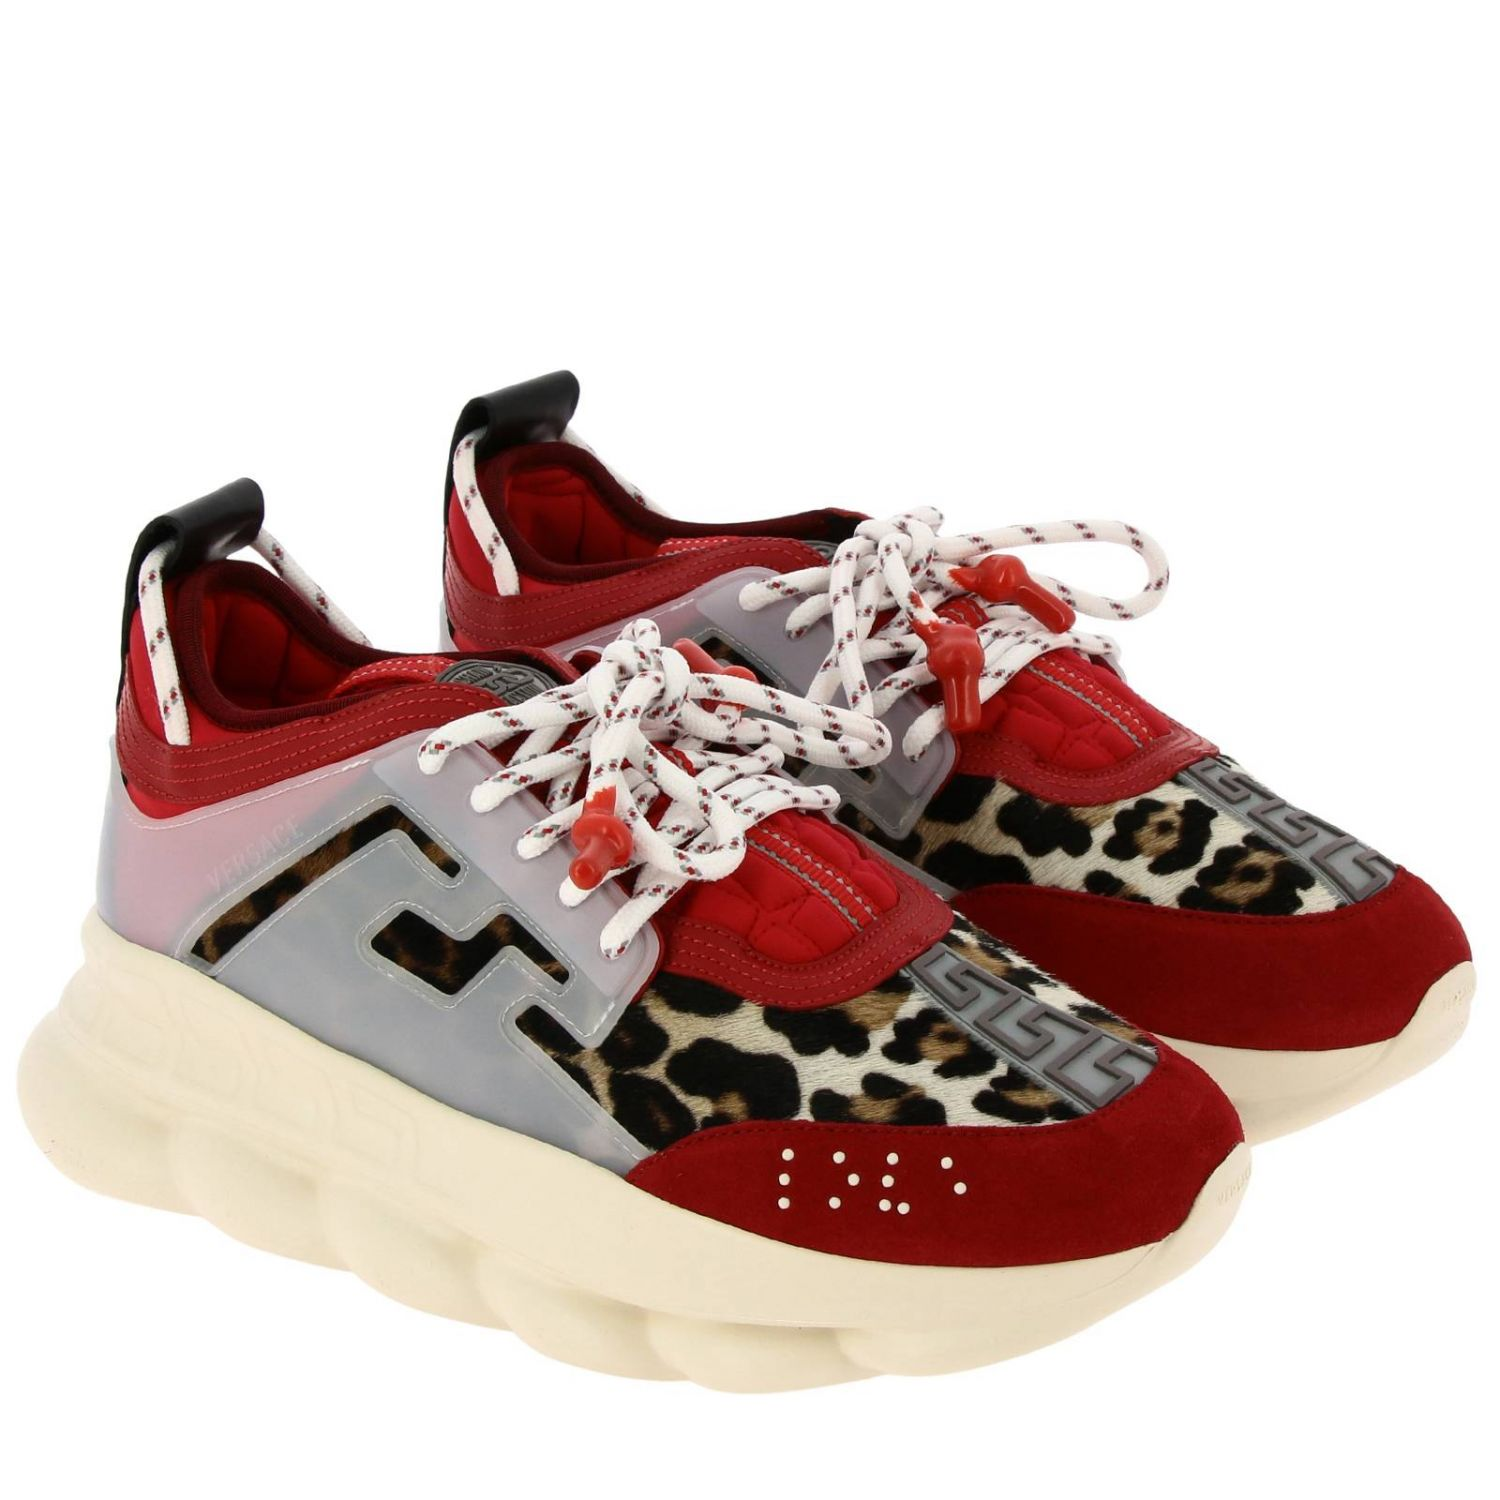 Trainers Versace: Versace Chain Reaction sneakers in neoprene and spotted fabric red 2